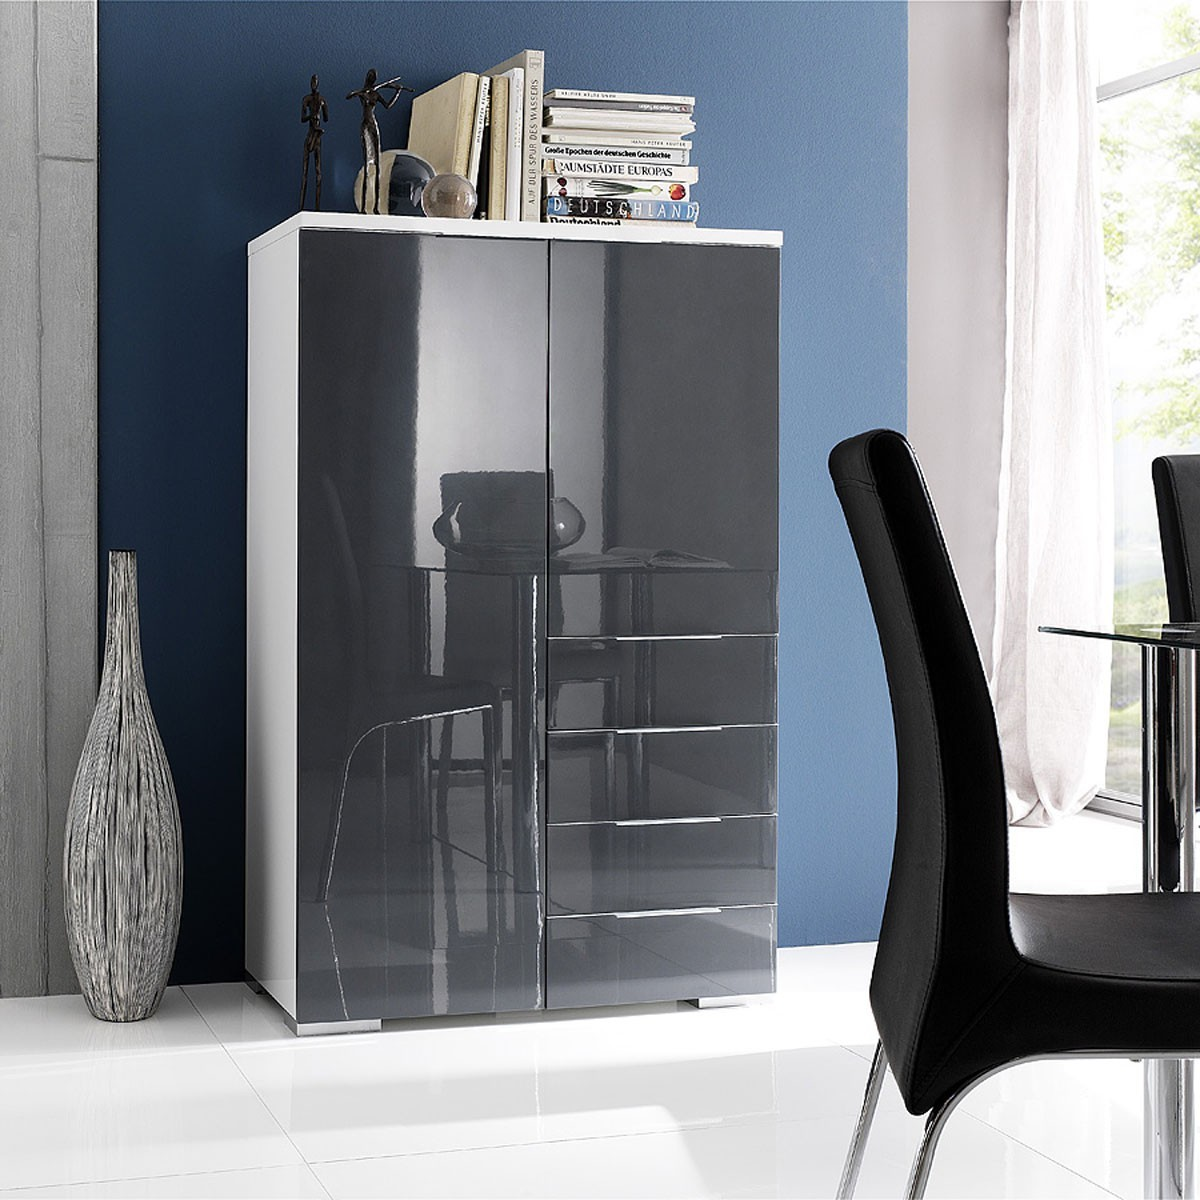 highboard kommode schrank in weiss und hochglanz grau ebay. Black Bedroom Furniture Sets. Home Design Ideas